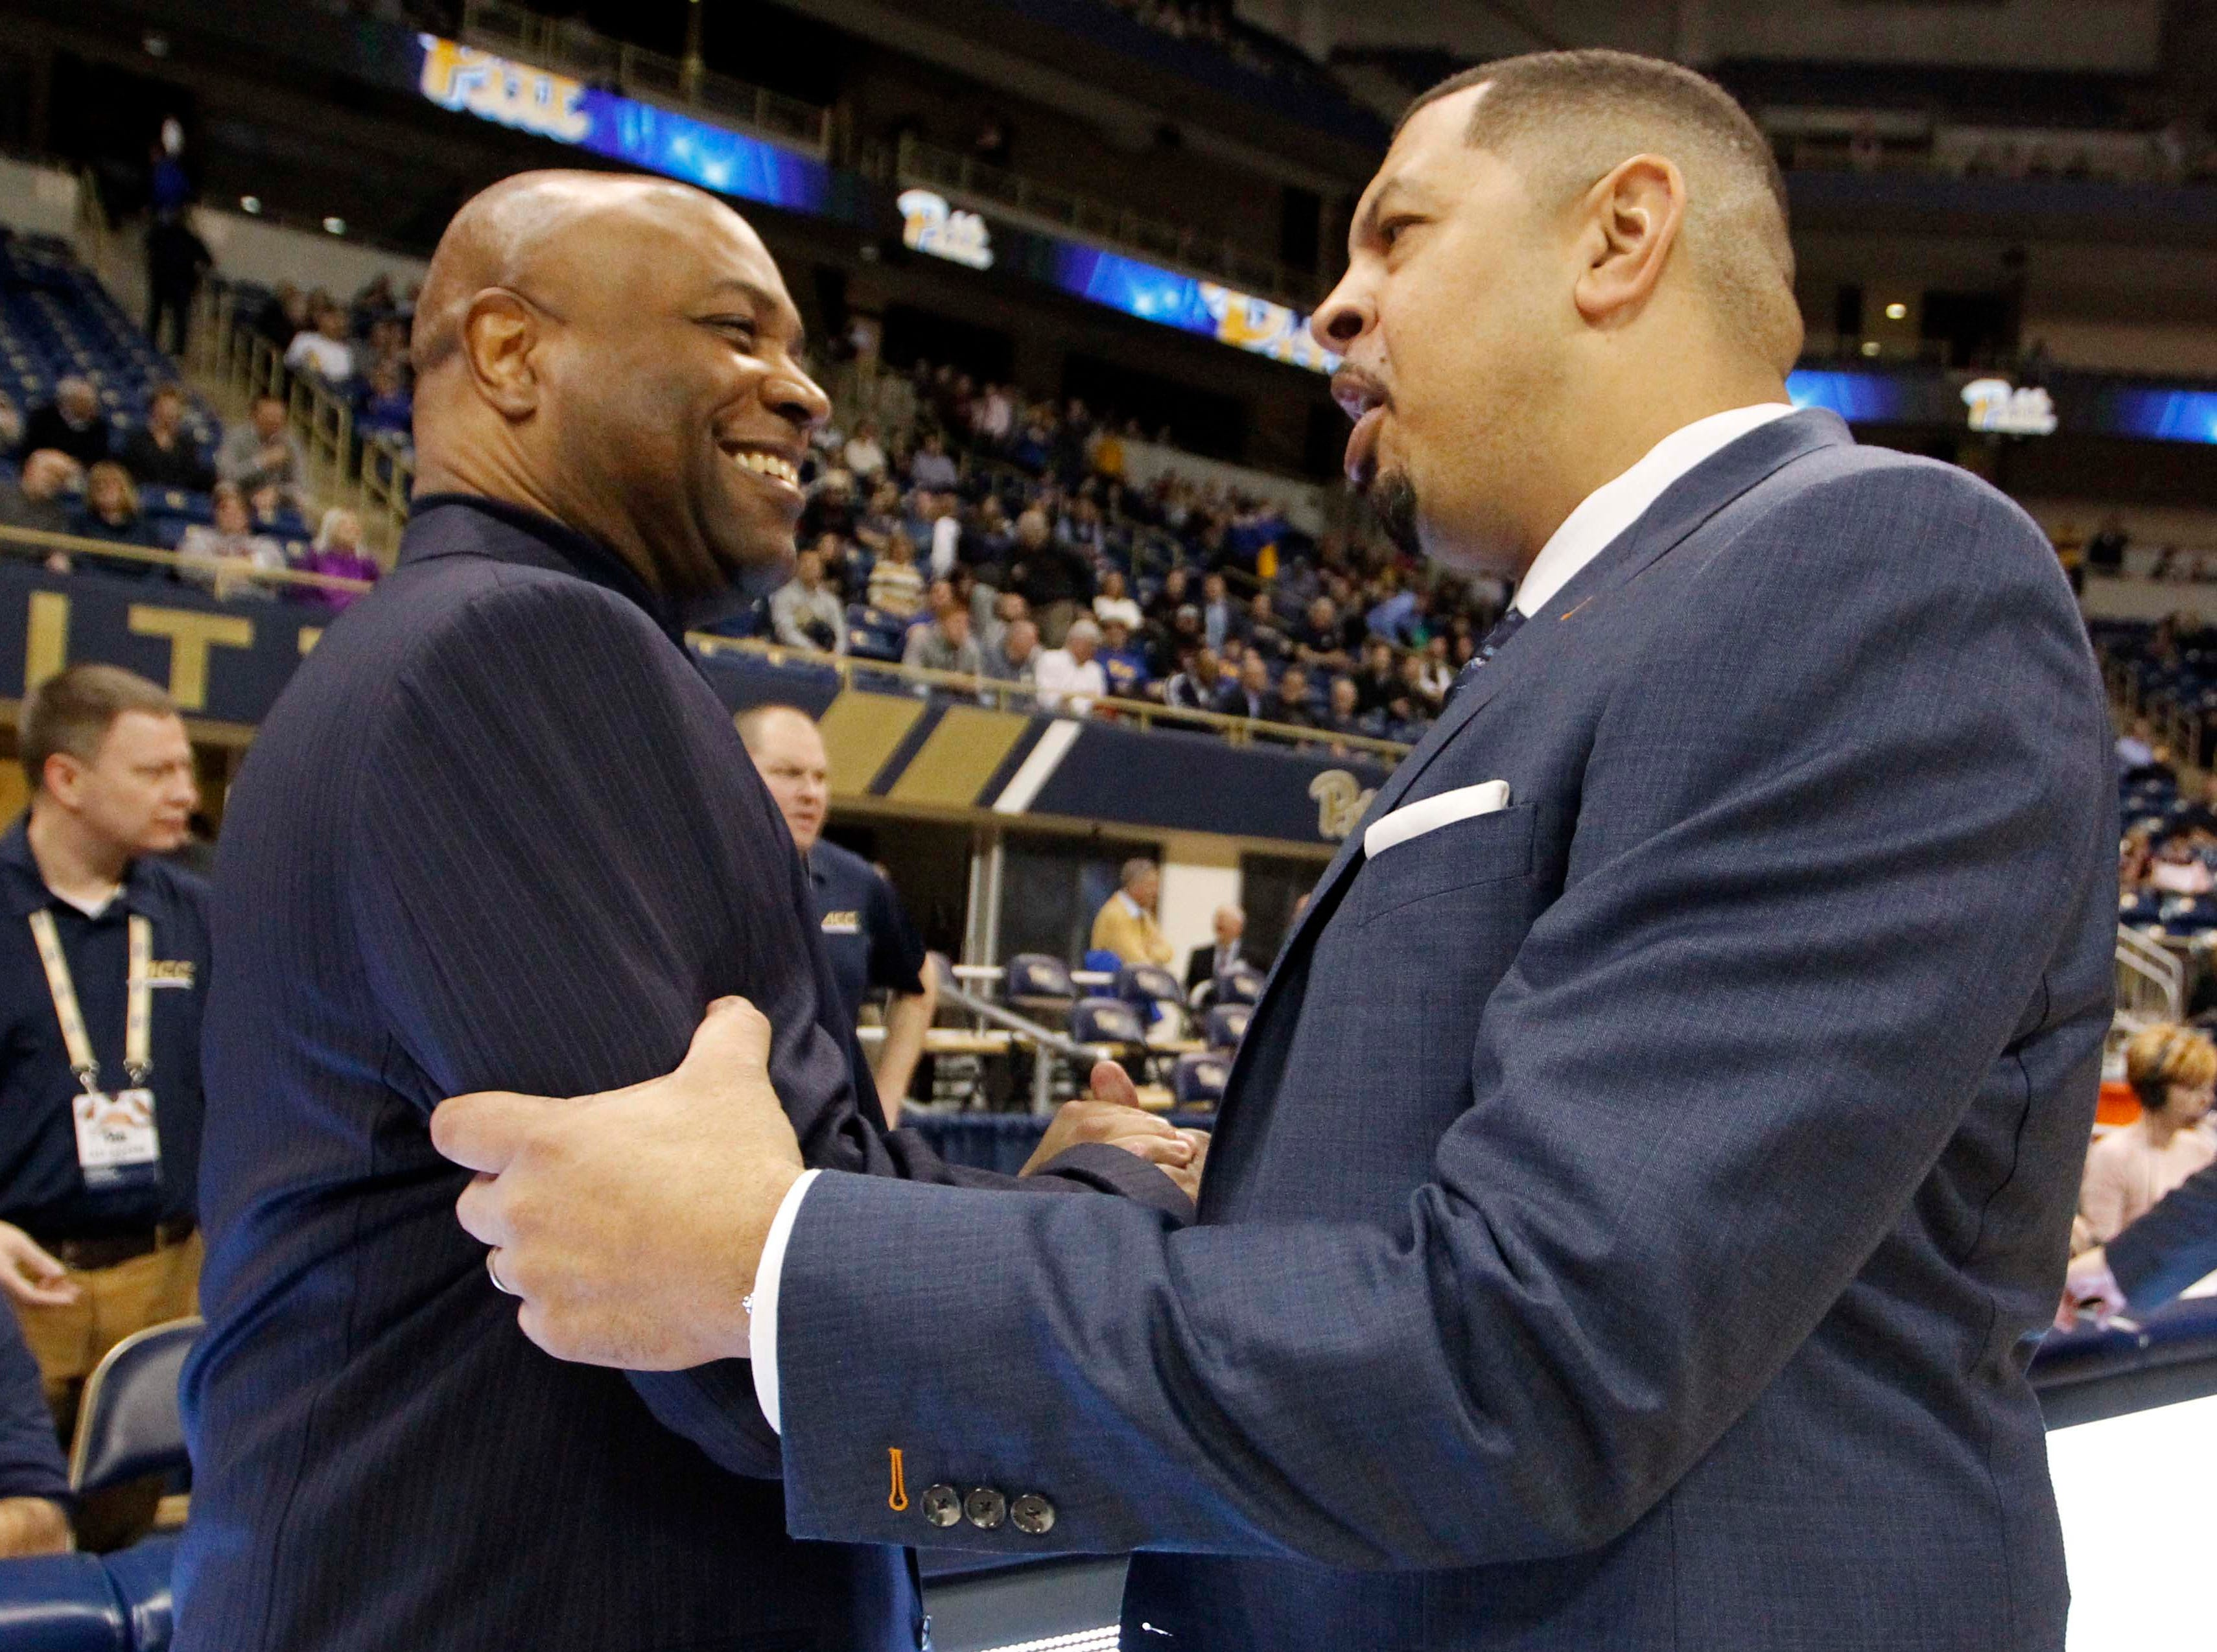 Jan 14, 2019; Pittsburgh, PA, USA; Florida State Seminoles head coach Leonard Hamilton (left) and Pittsburgh Panthers head coach Jeff Capel (right) shake hands before their teams play at the Petersen Events Center. Mandatory Credit: Charles LeClaire-USA TODAY Sports